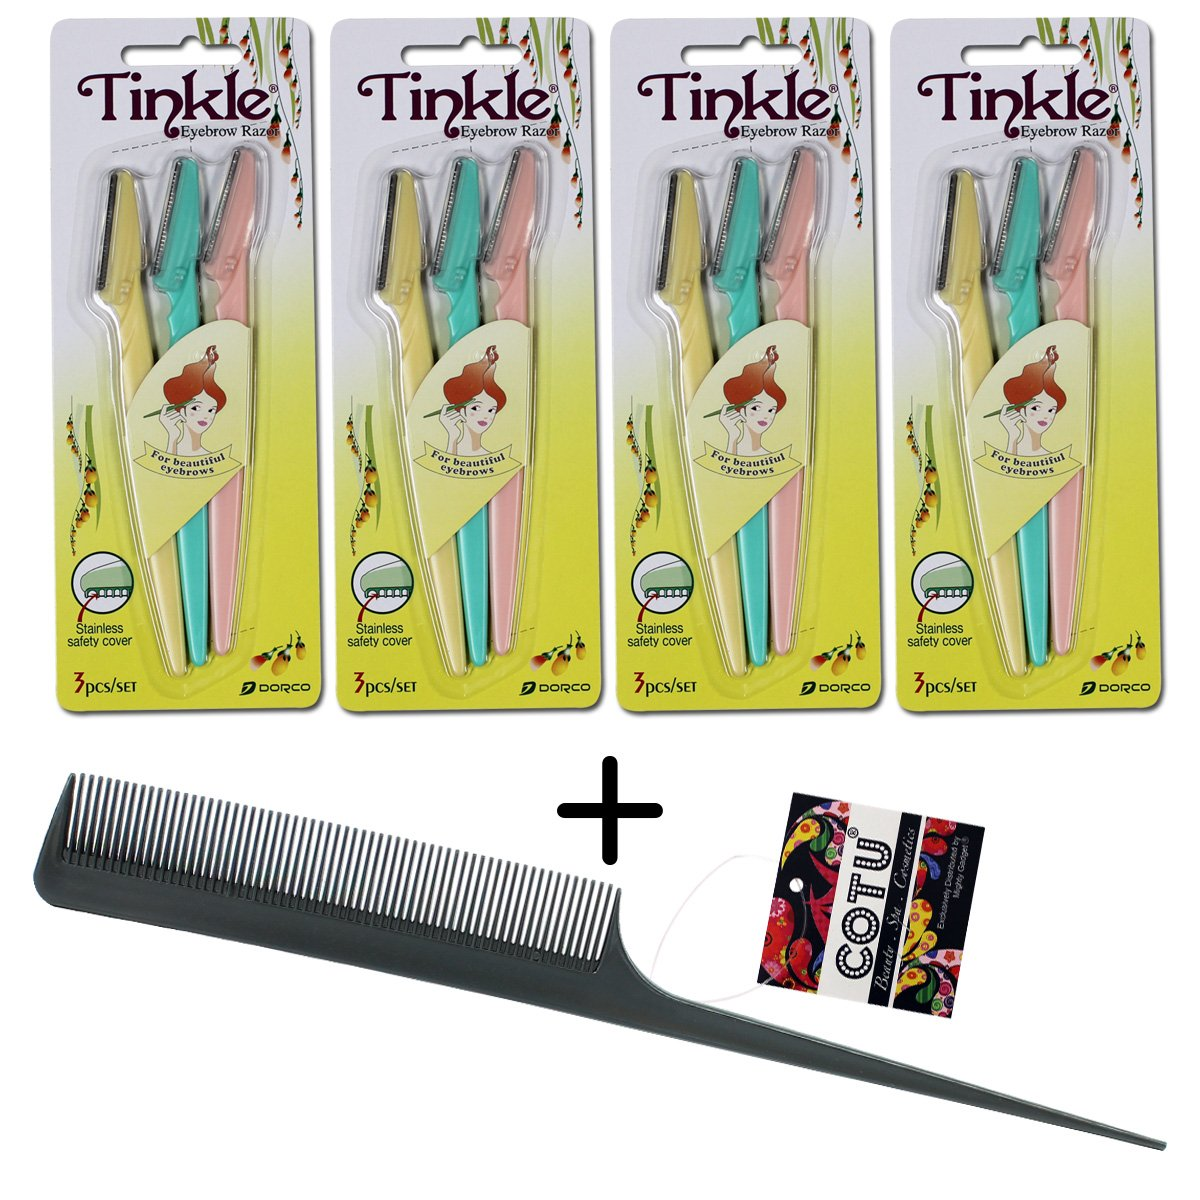 *Authentic Genuine* Tinkle Eyebrow Razor for Beautiful Eyebrows (12 pcs) + COTU (R) Hair Comb (1 pcs)